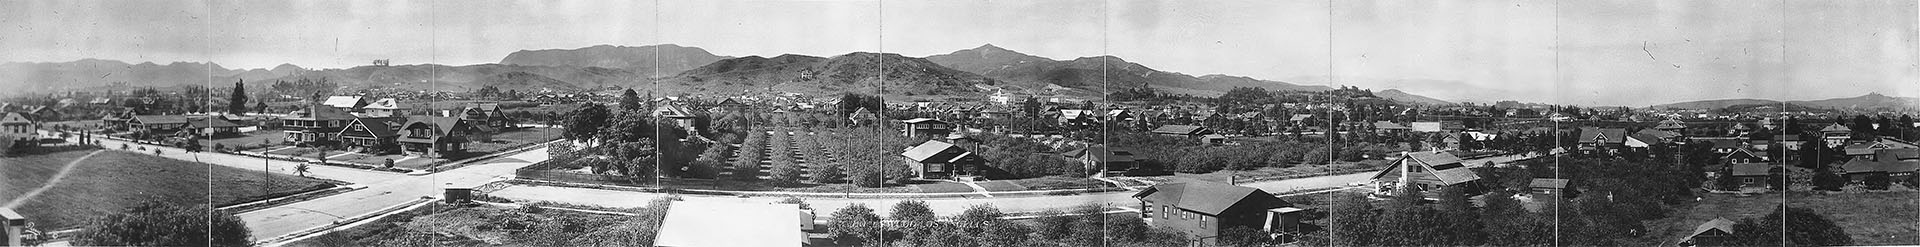 Panoramic view of residential Hollywood, ca.1910